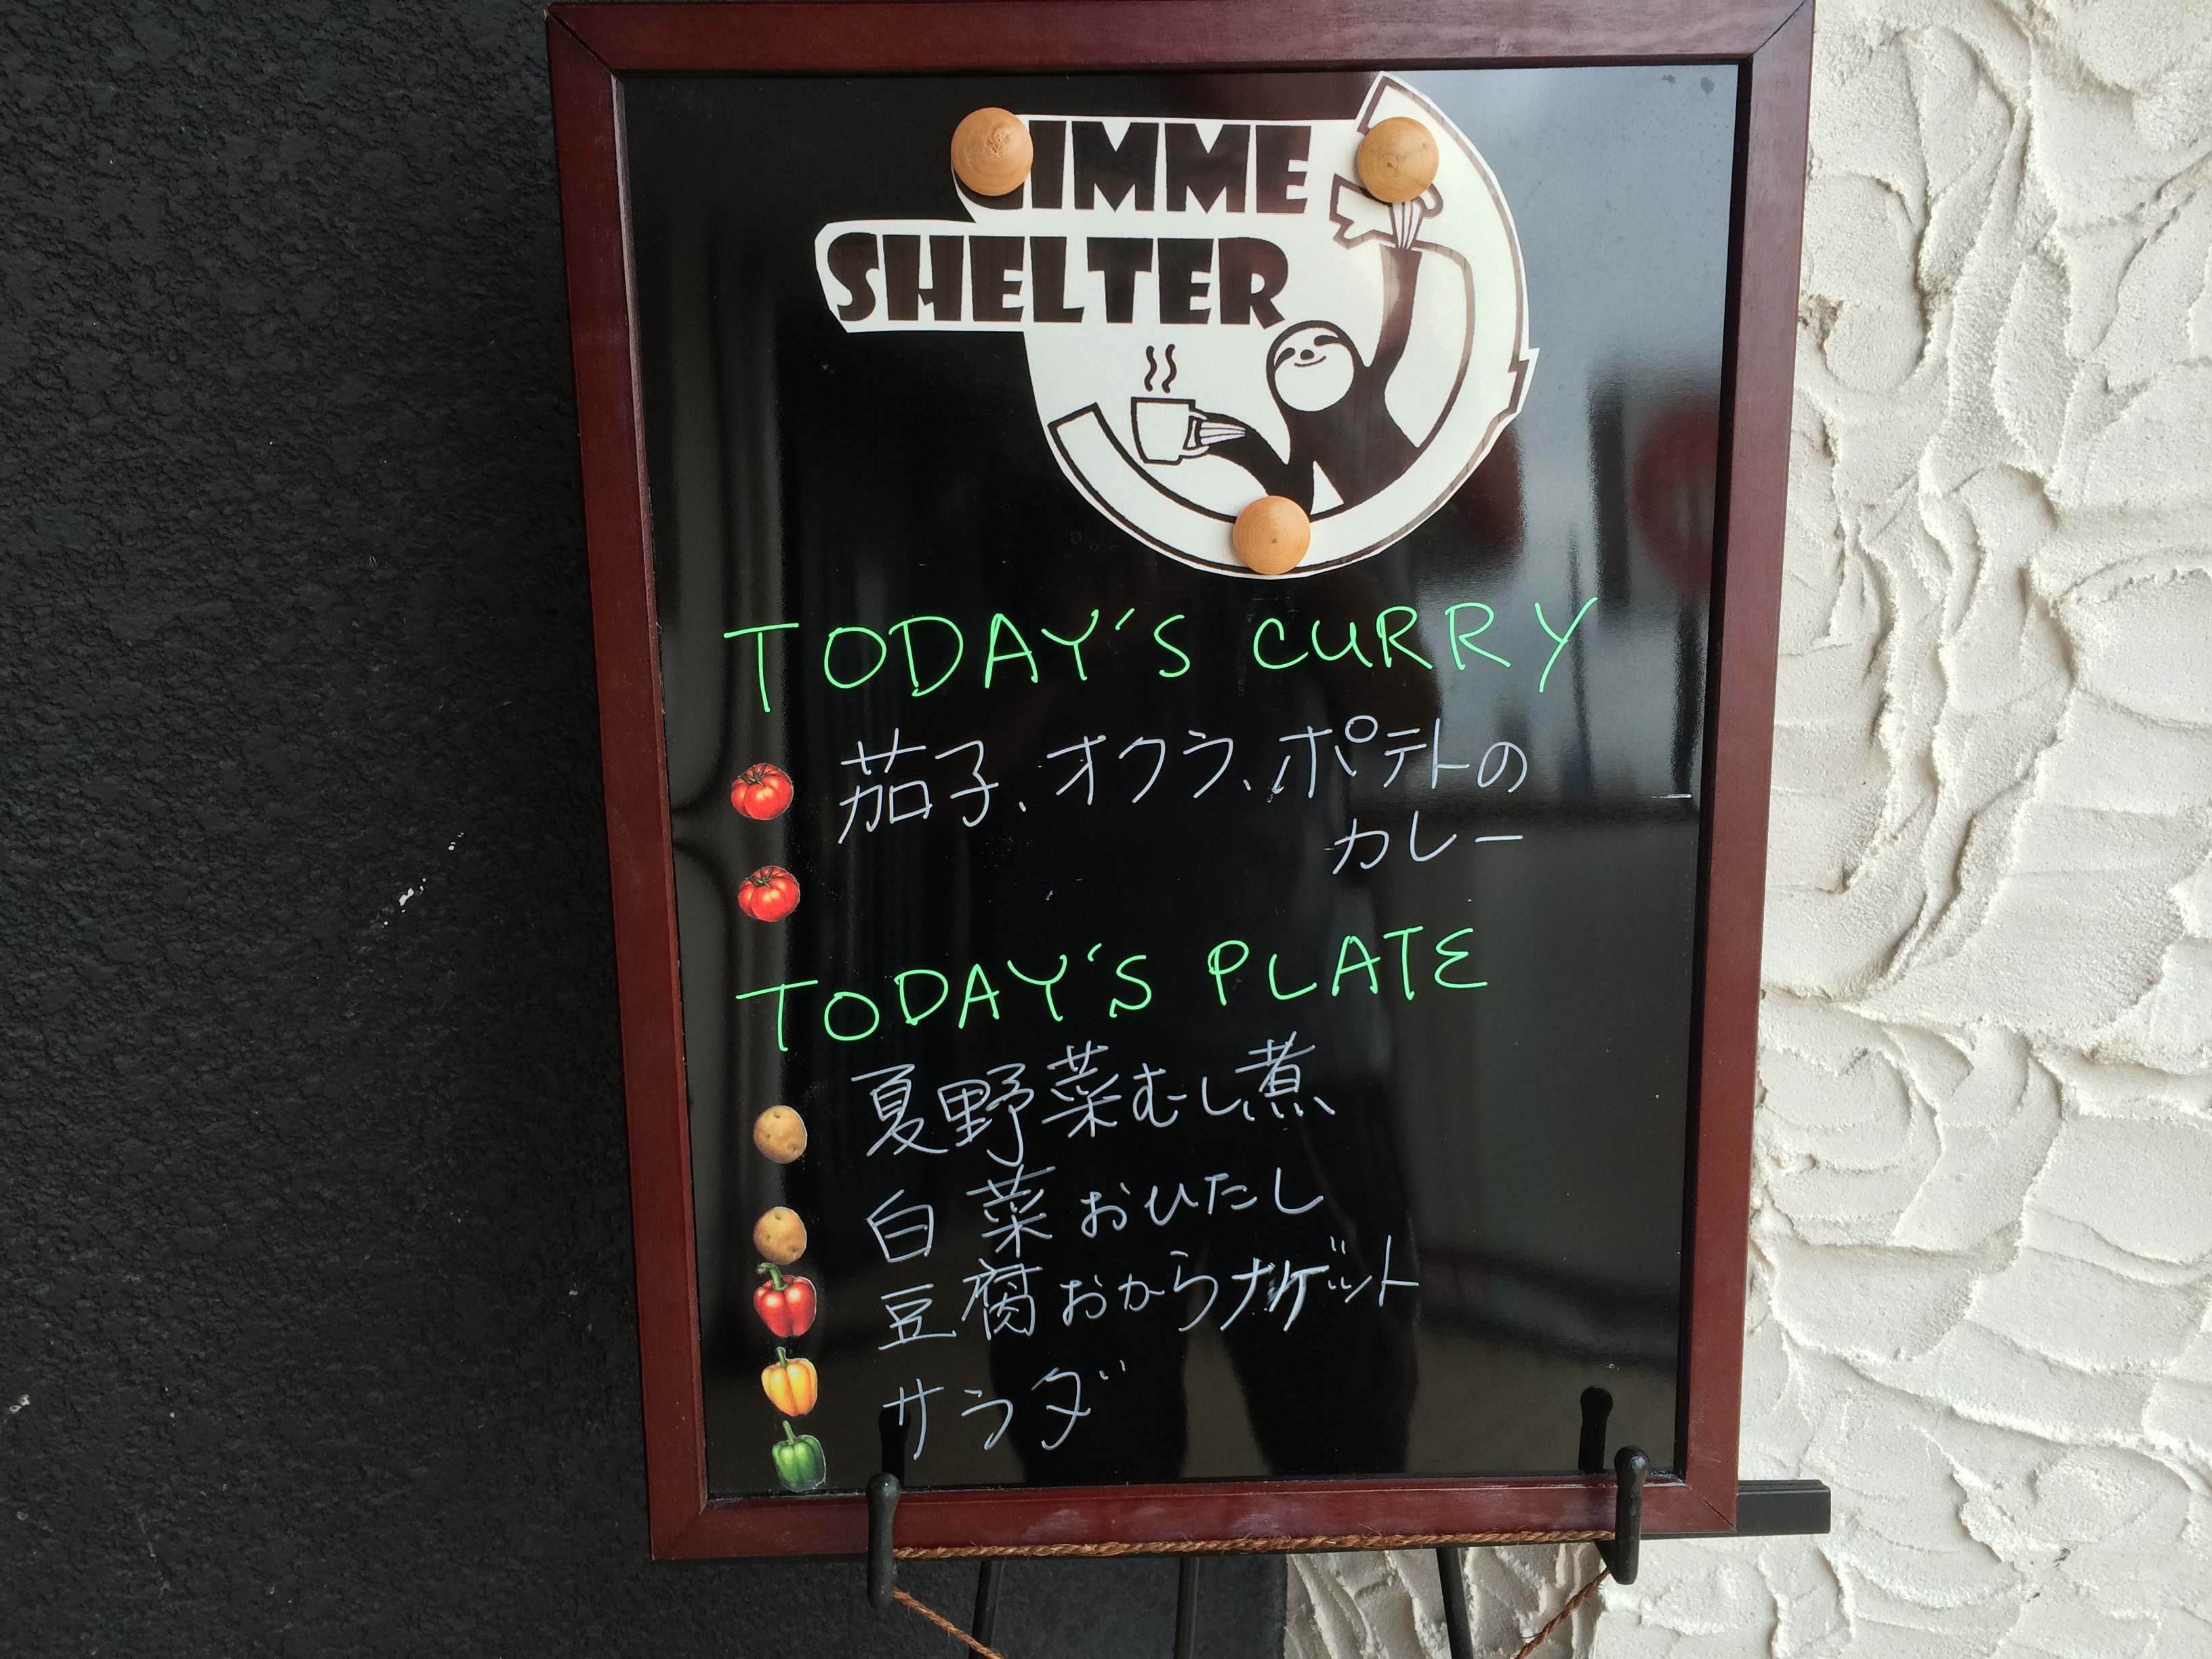 GIMME SHELTER看板